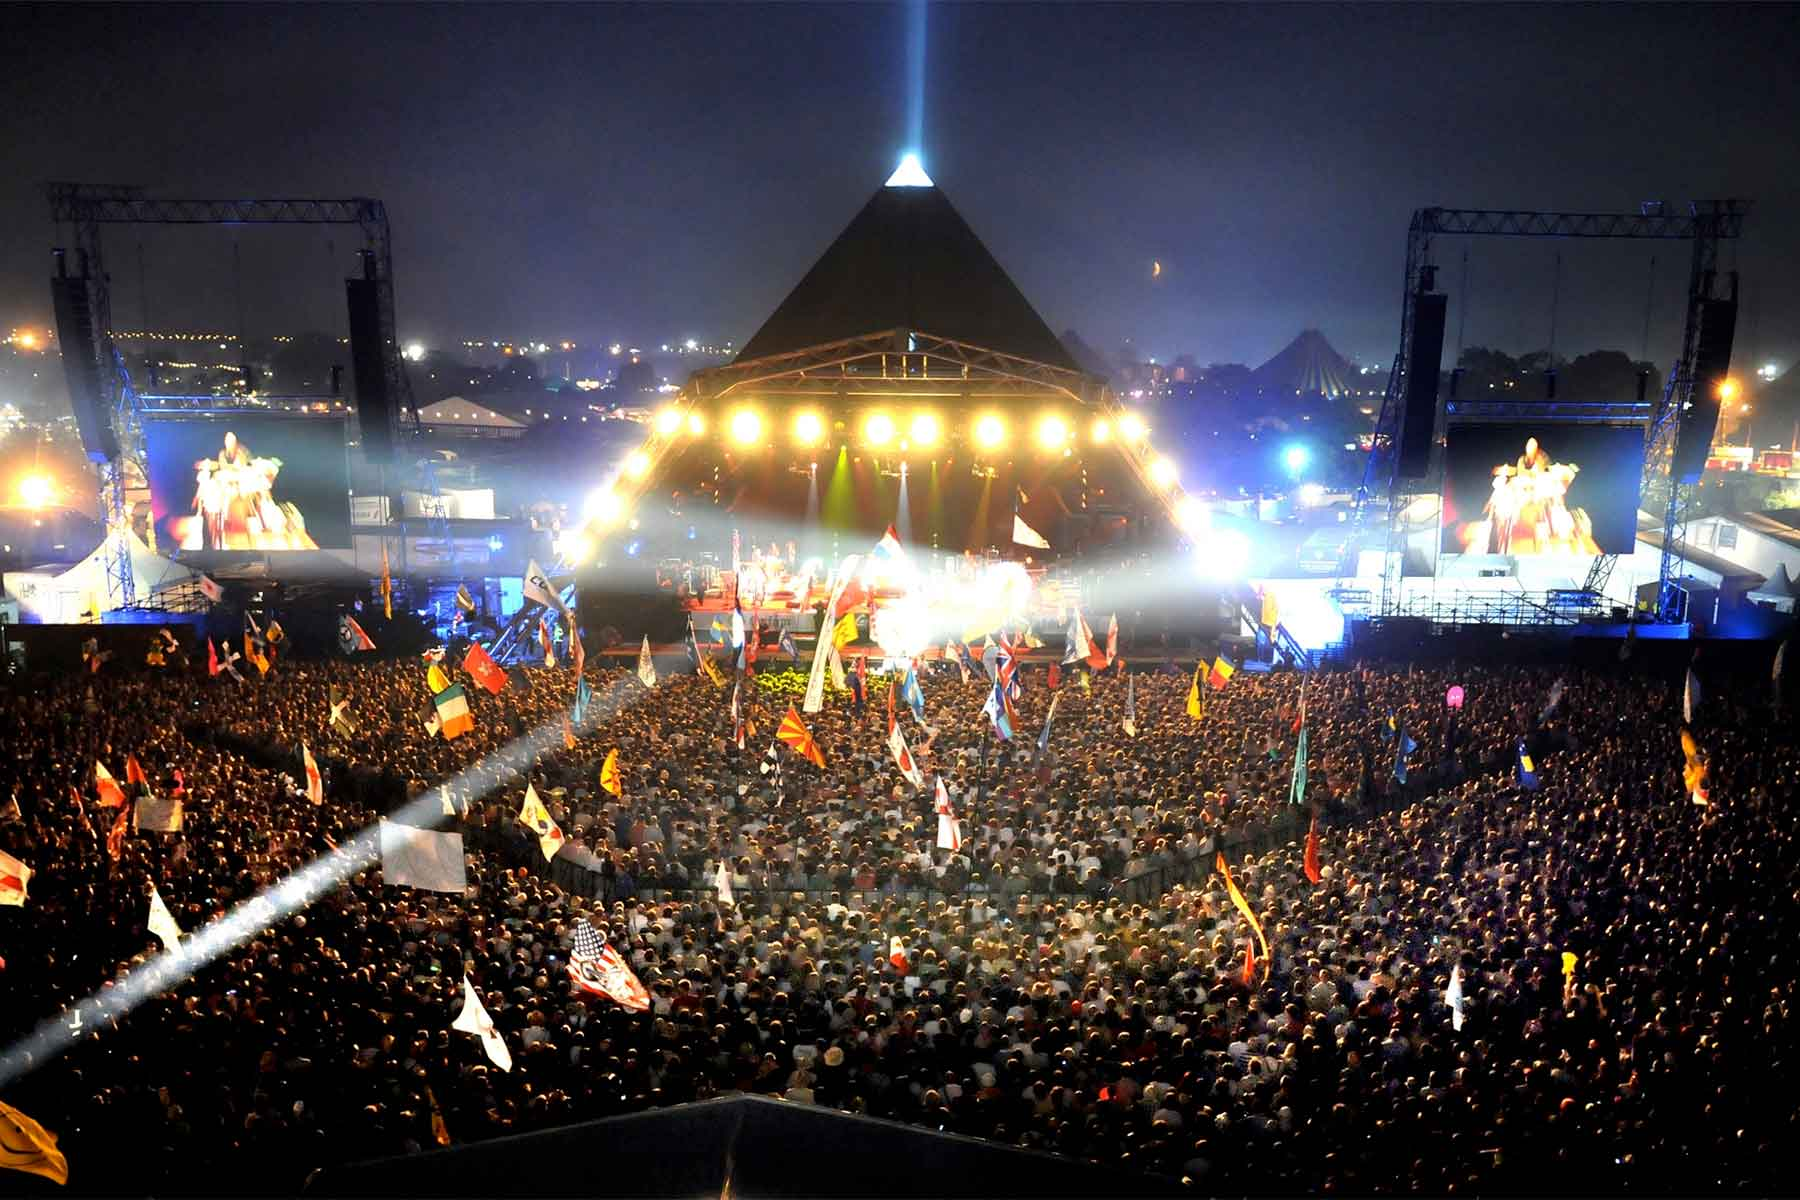 Glastonbury, I should, but I can't….